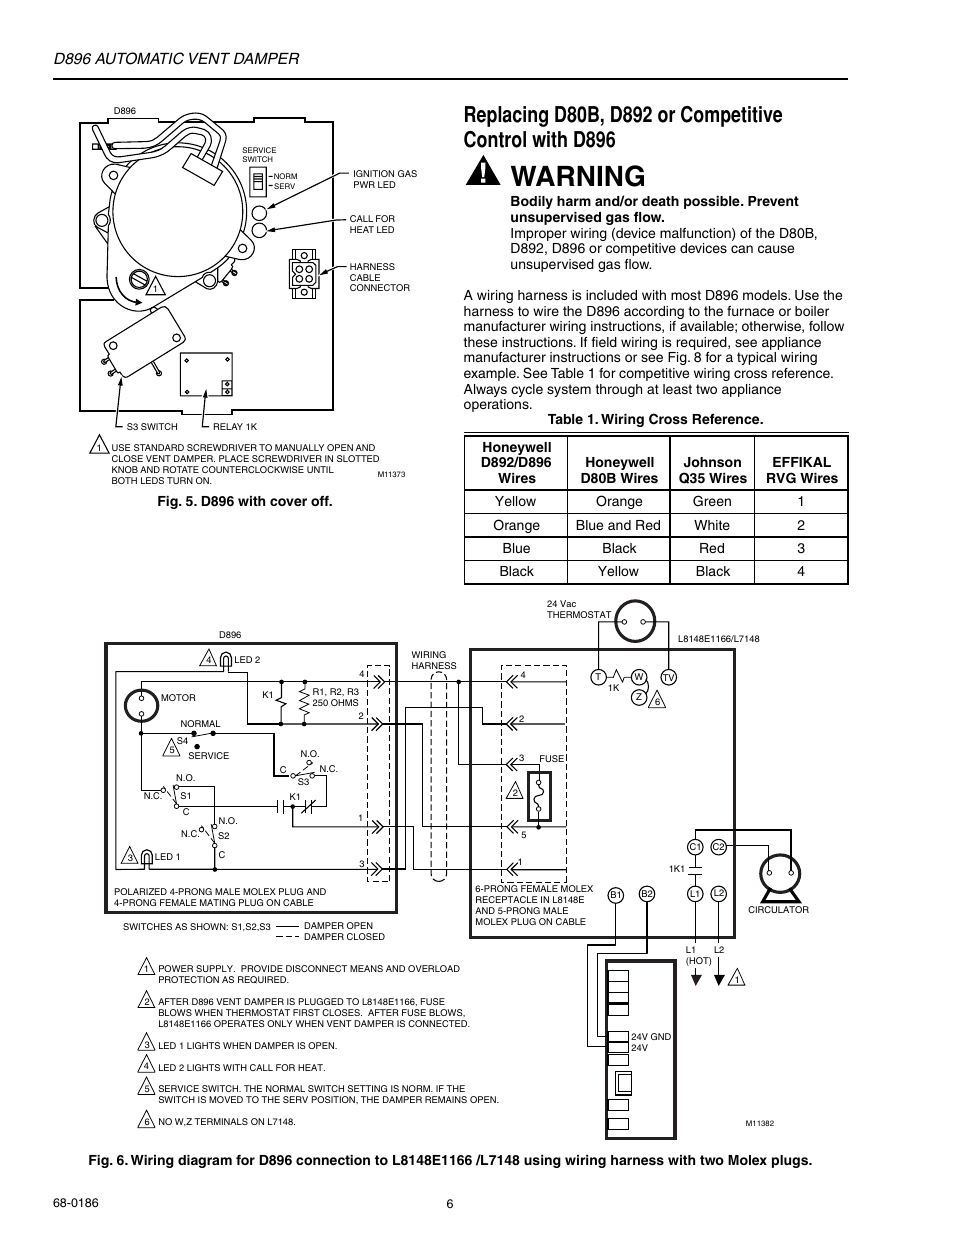 honeywell automatic vent damper d896 page6 warning, d896 automatic vent damper honeywell automatic vent automatic vent damper wiring diagram at readyjetset.co